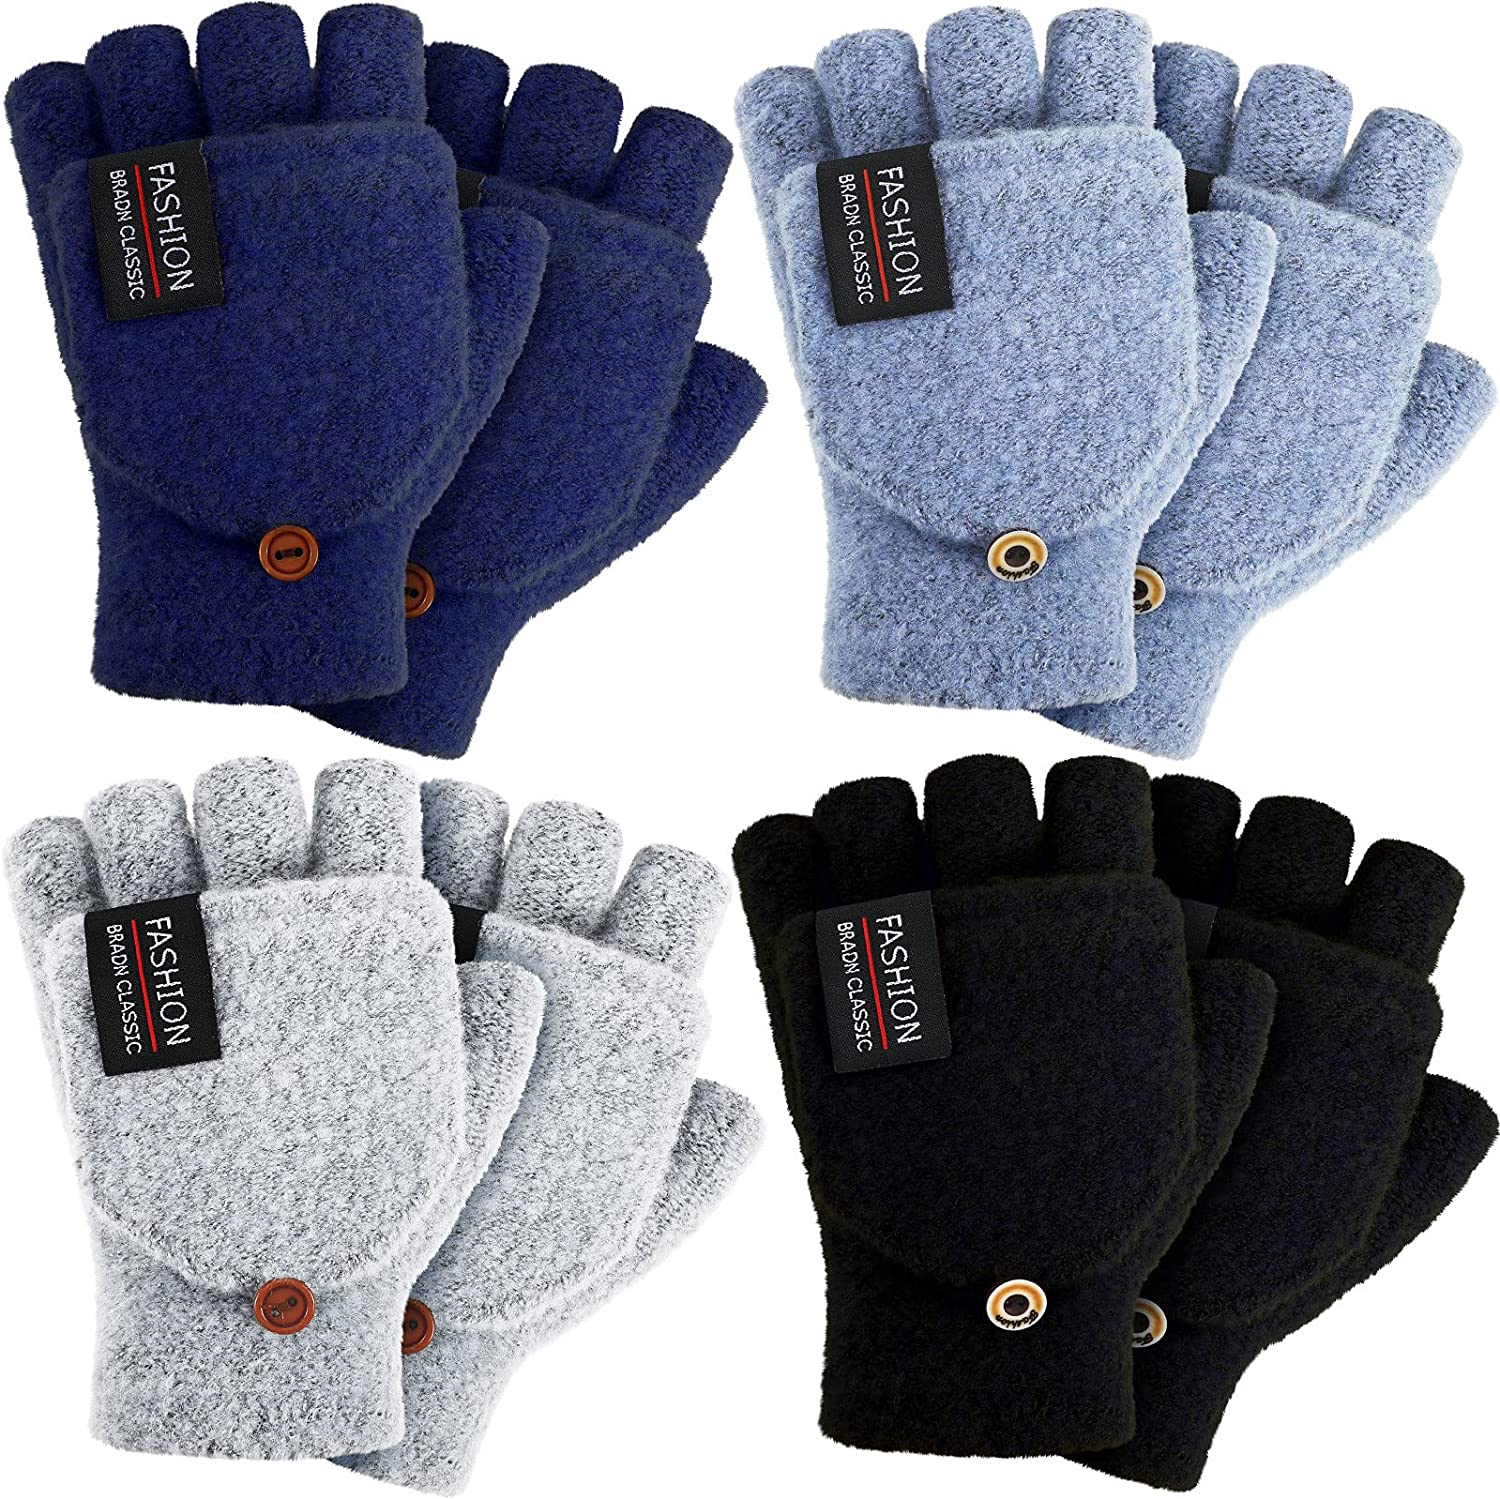 4 Pairs Winter Gloves Warm Wool Knitted Convertible Fingerless Gloves Thermal Half Finger Typing Gloves with Mitten Cover for Women Men